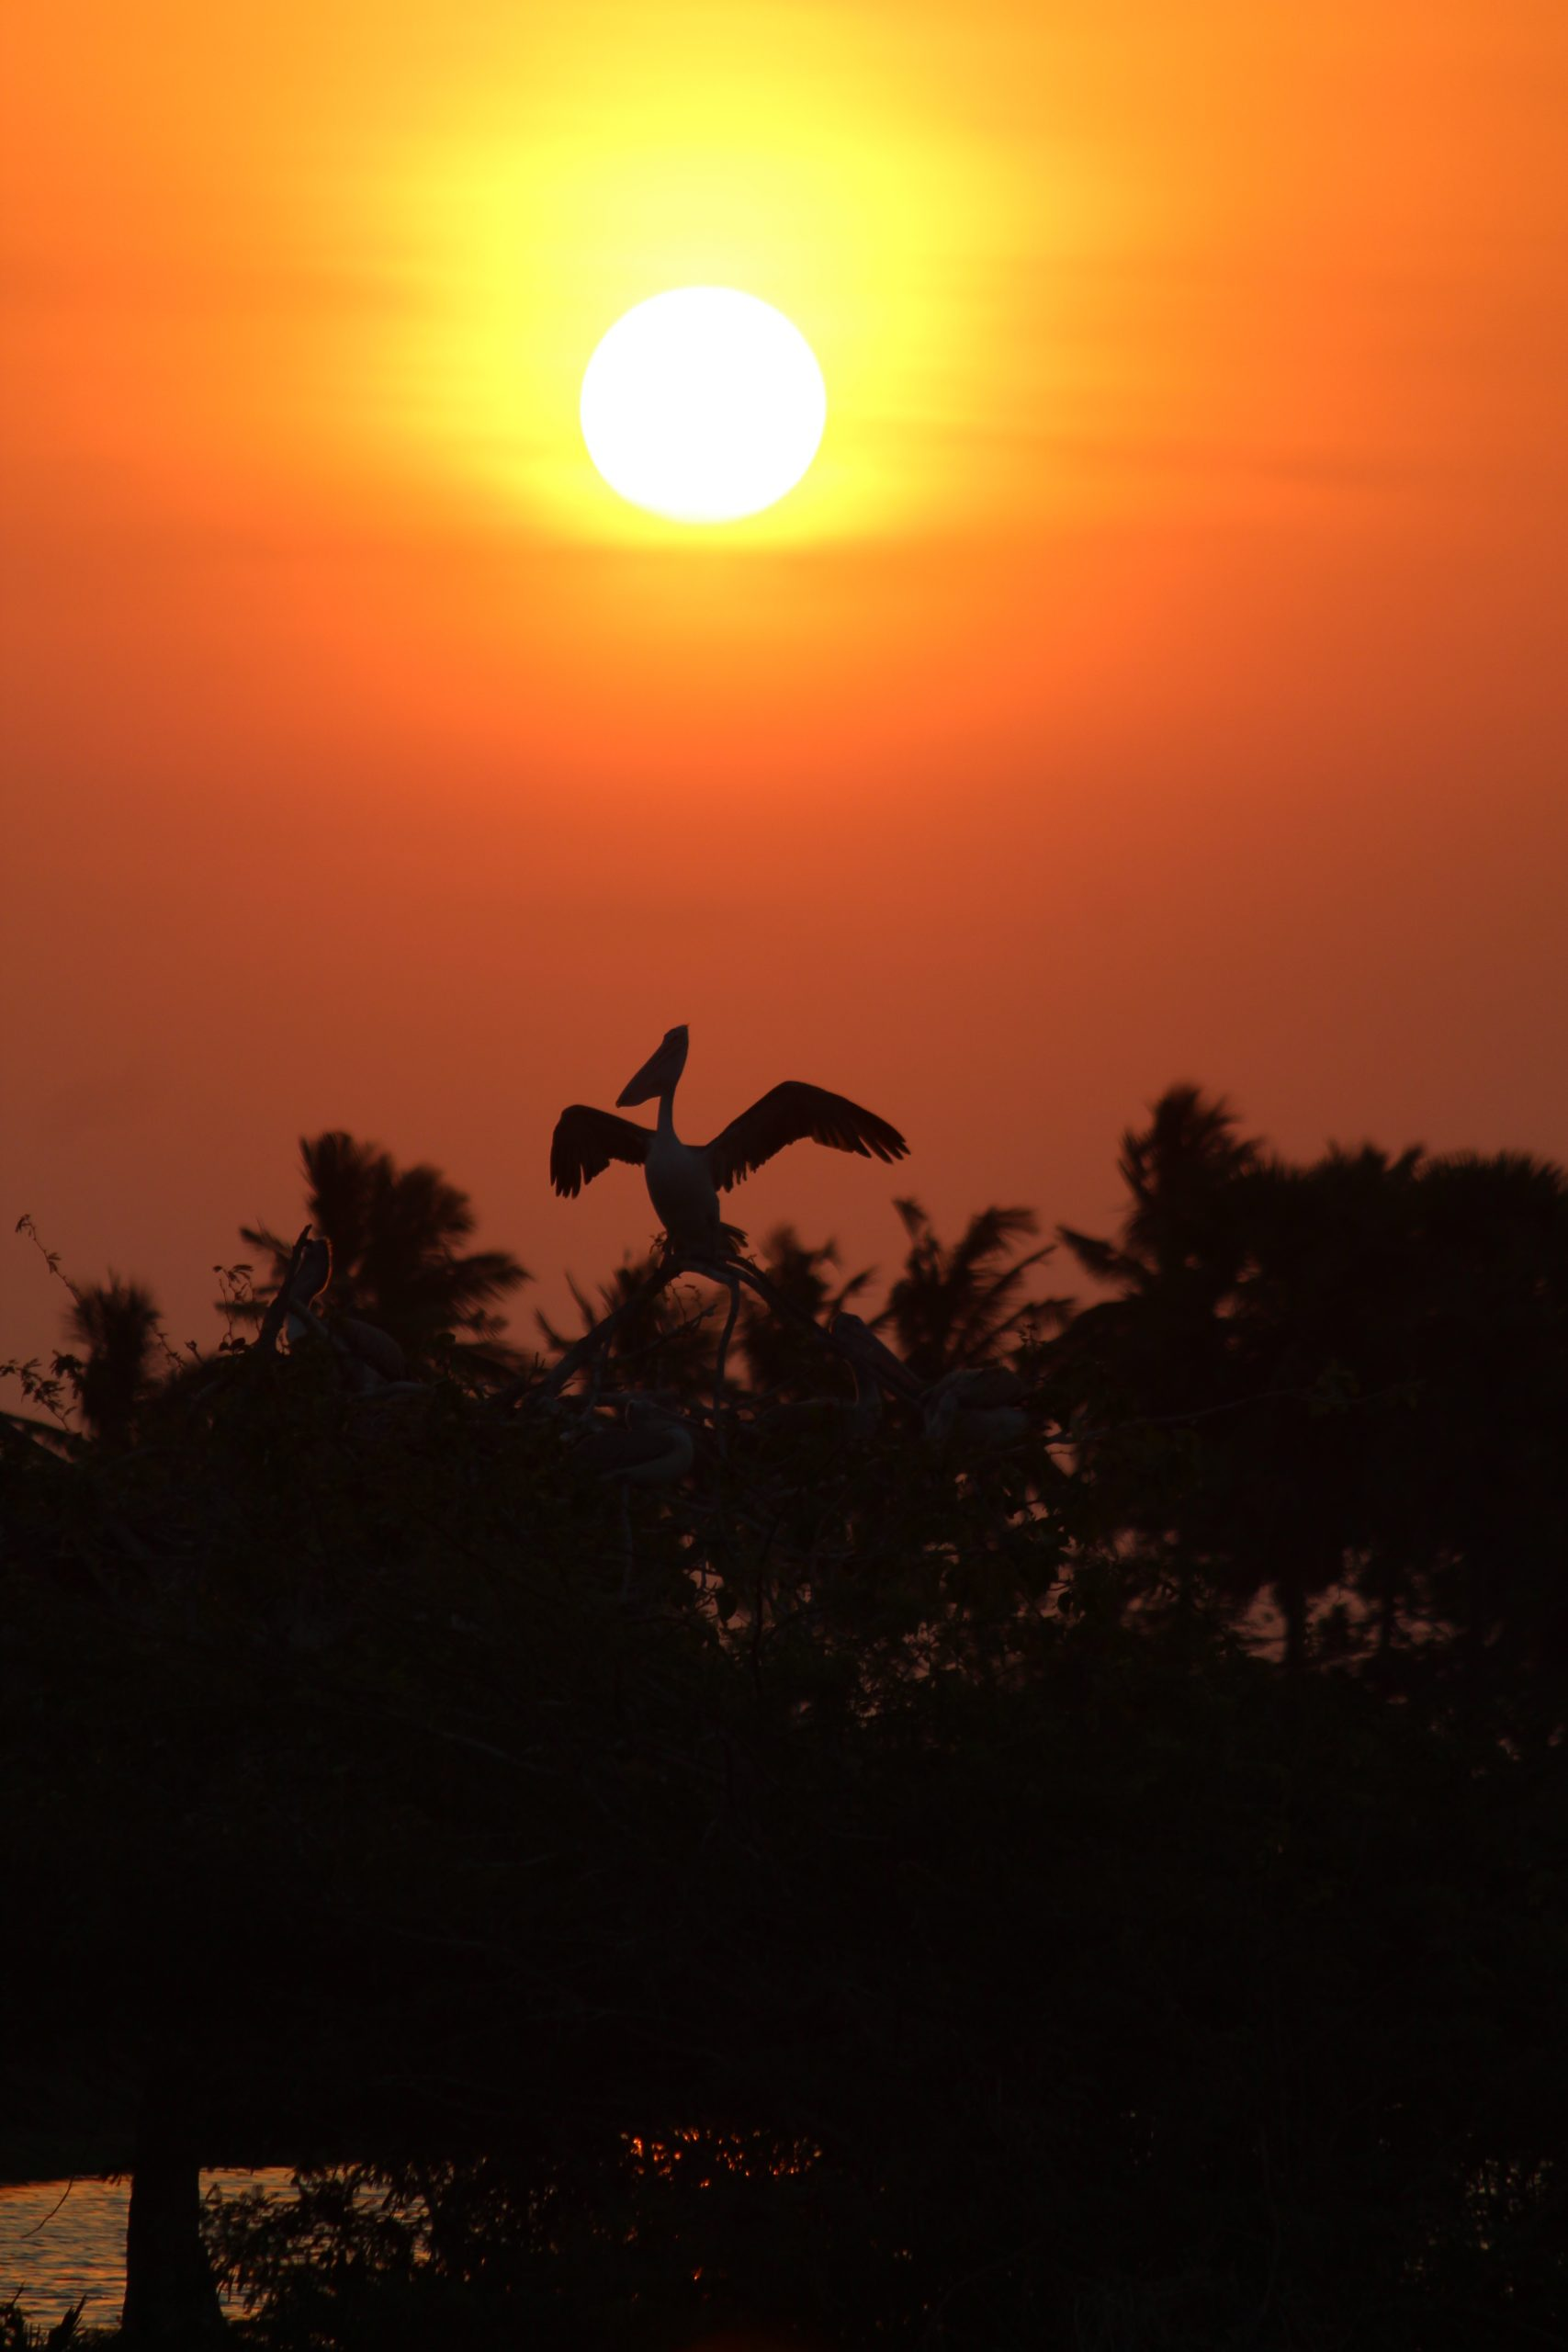 Orange sunset sky and a silhouette of flying bird